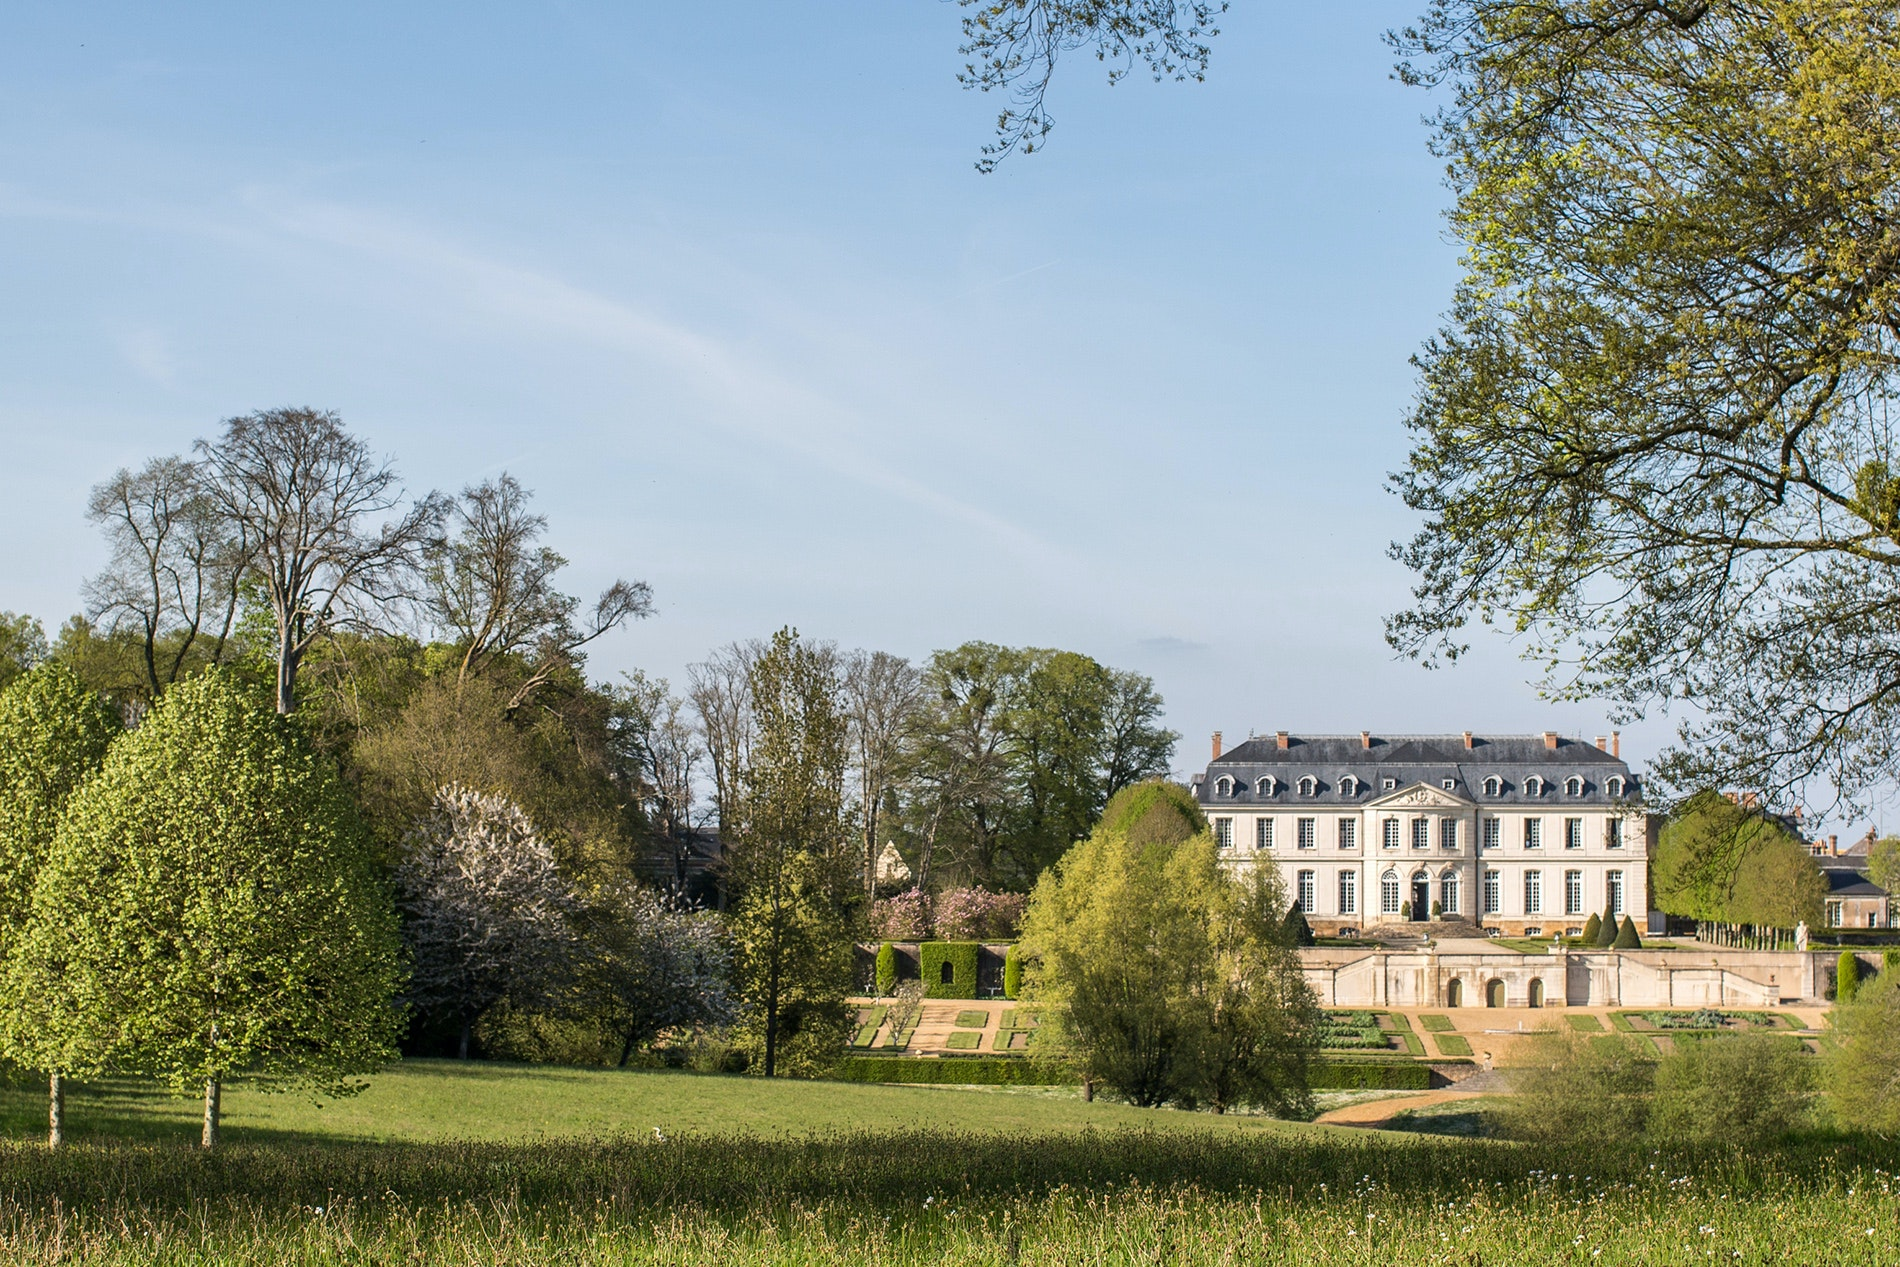 The Hotel Château du Grand-Lucé will be the place for castle hotel lovers to stay in next year.